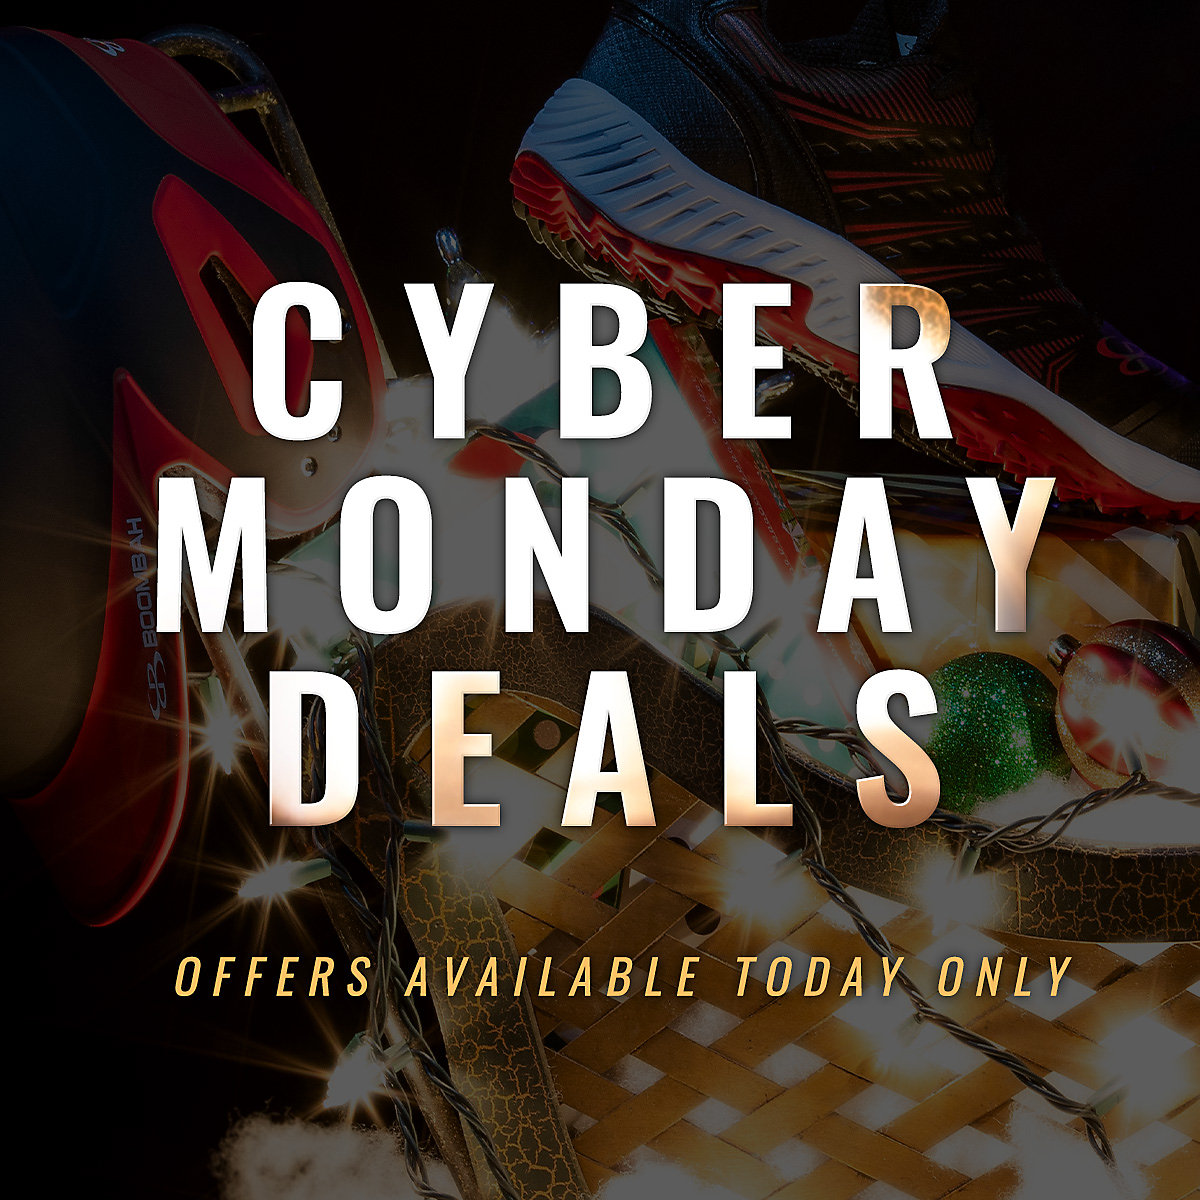 Black Friday Deals, offers available November 27 through November 30